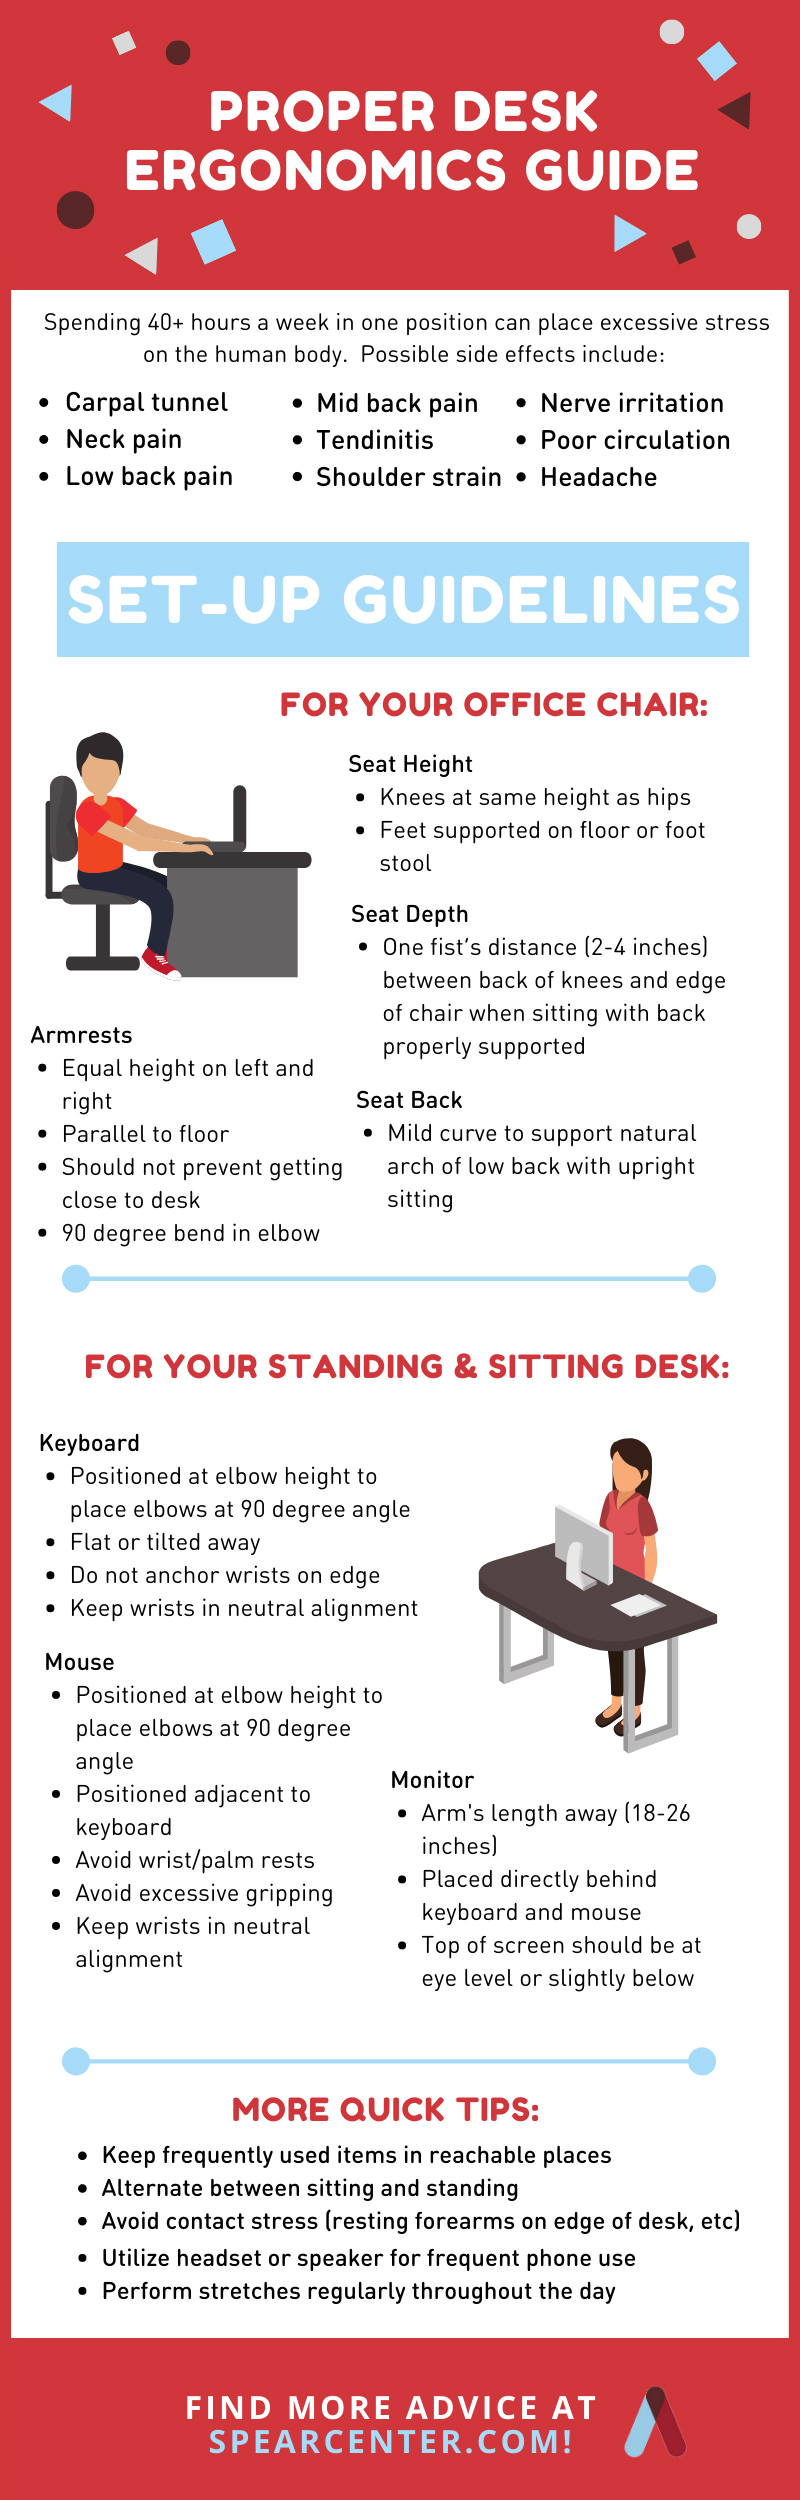 infographic for proper desk set up to prevent aches and pains